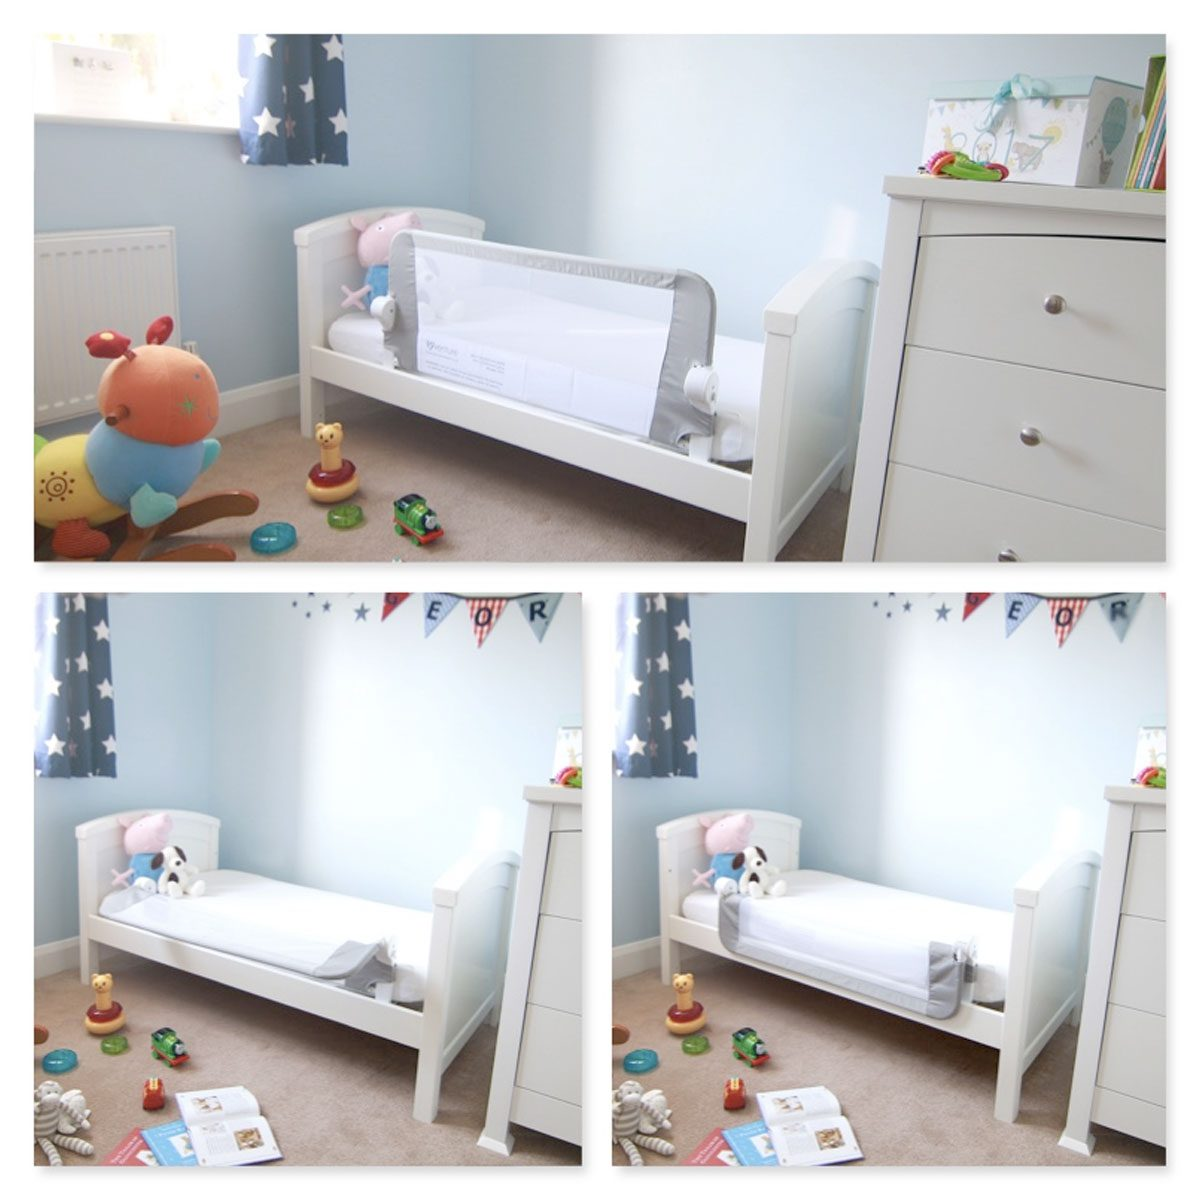 The Bed Guard can be folded to give your child easy access to and from their bed.